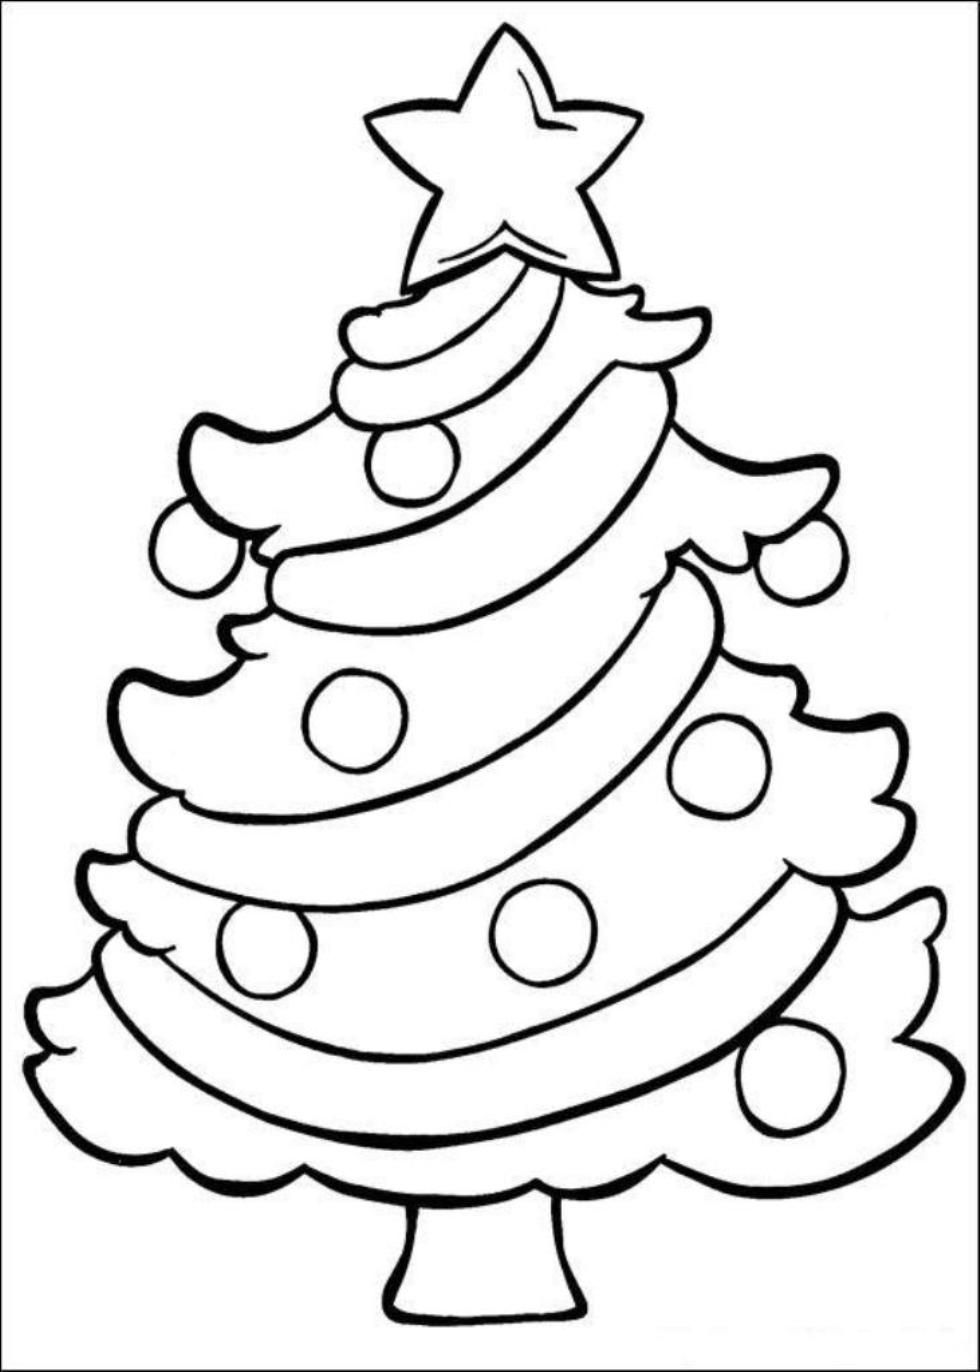 Kids coloring pages christmas trees printable - Christmas Coloring Page Christmas Coloring Pages For Babies Christmas Kids Printables